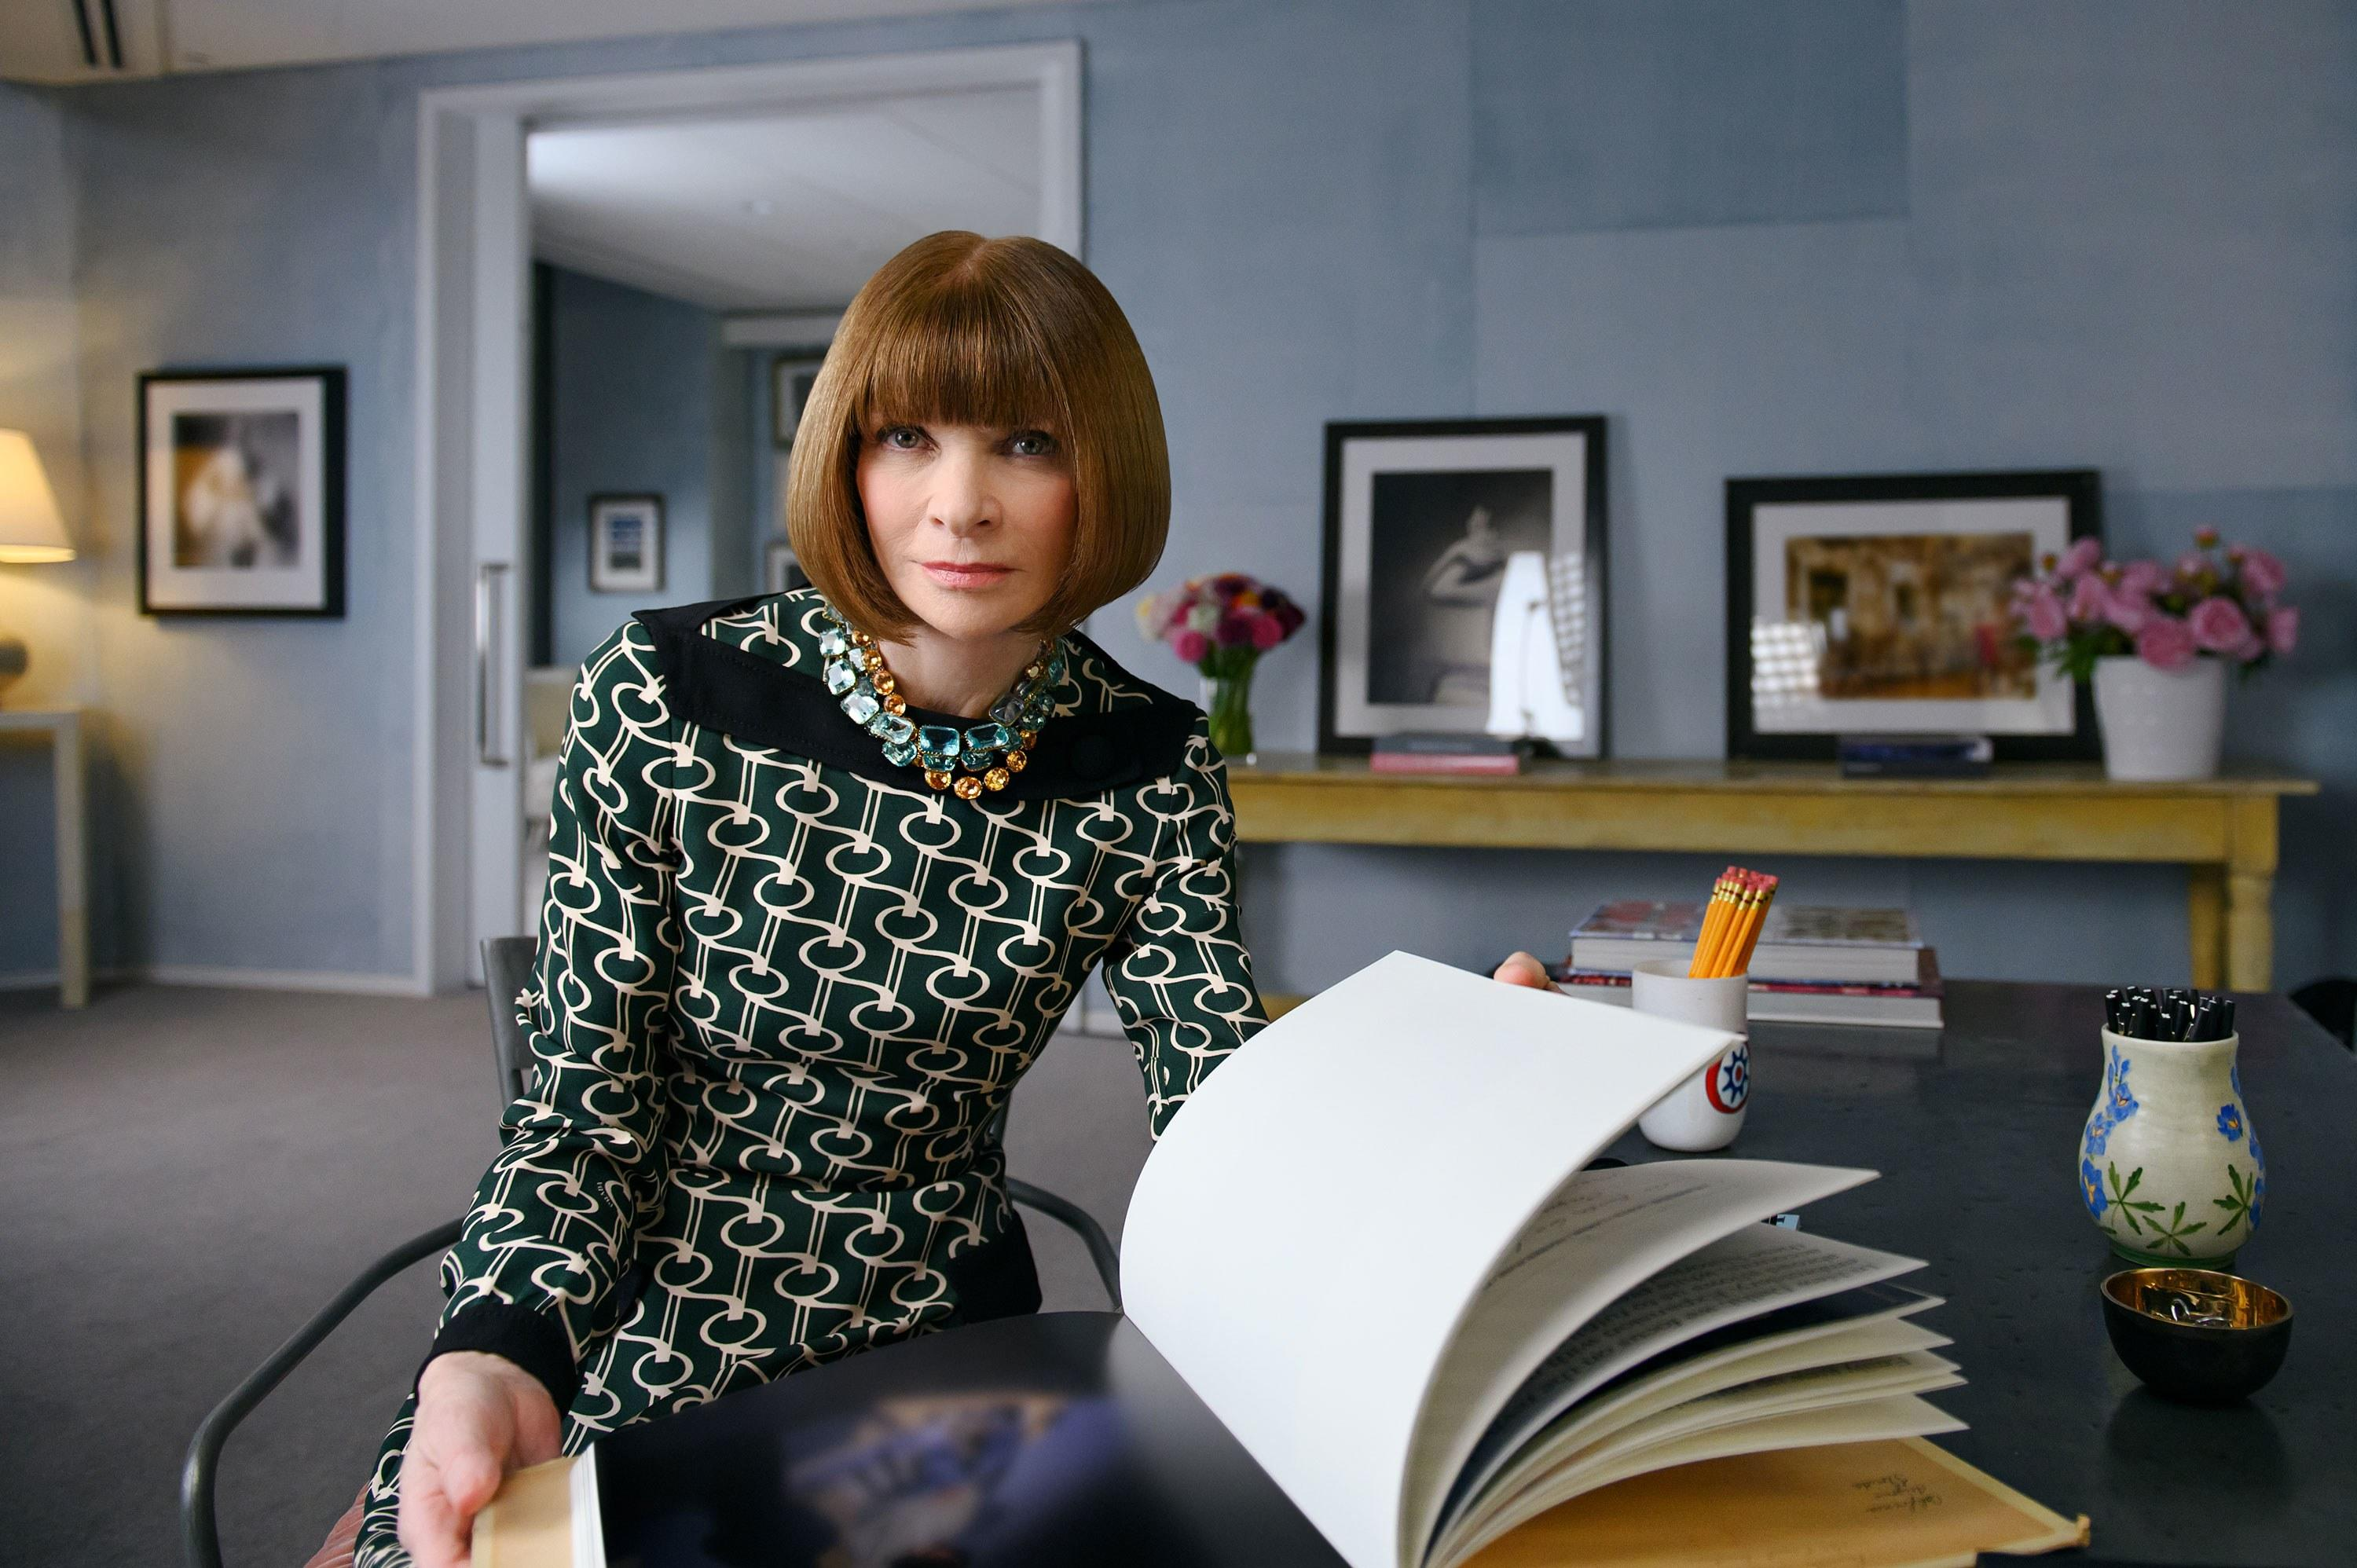 Anna Wintour Shares Her Creativity and Leadership Expertise in New MasterClass Series